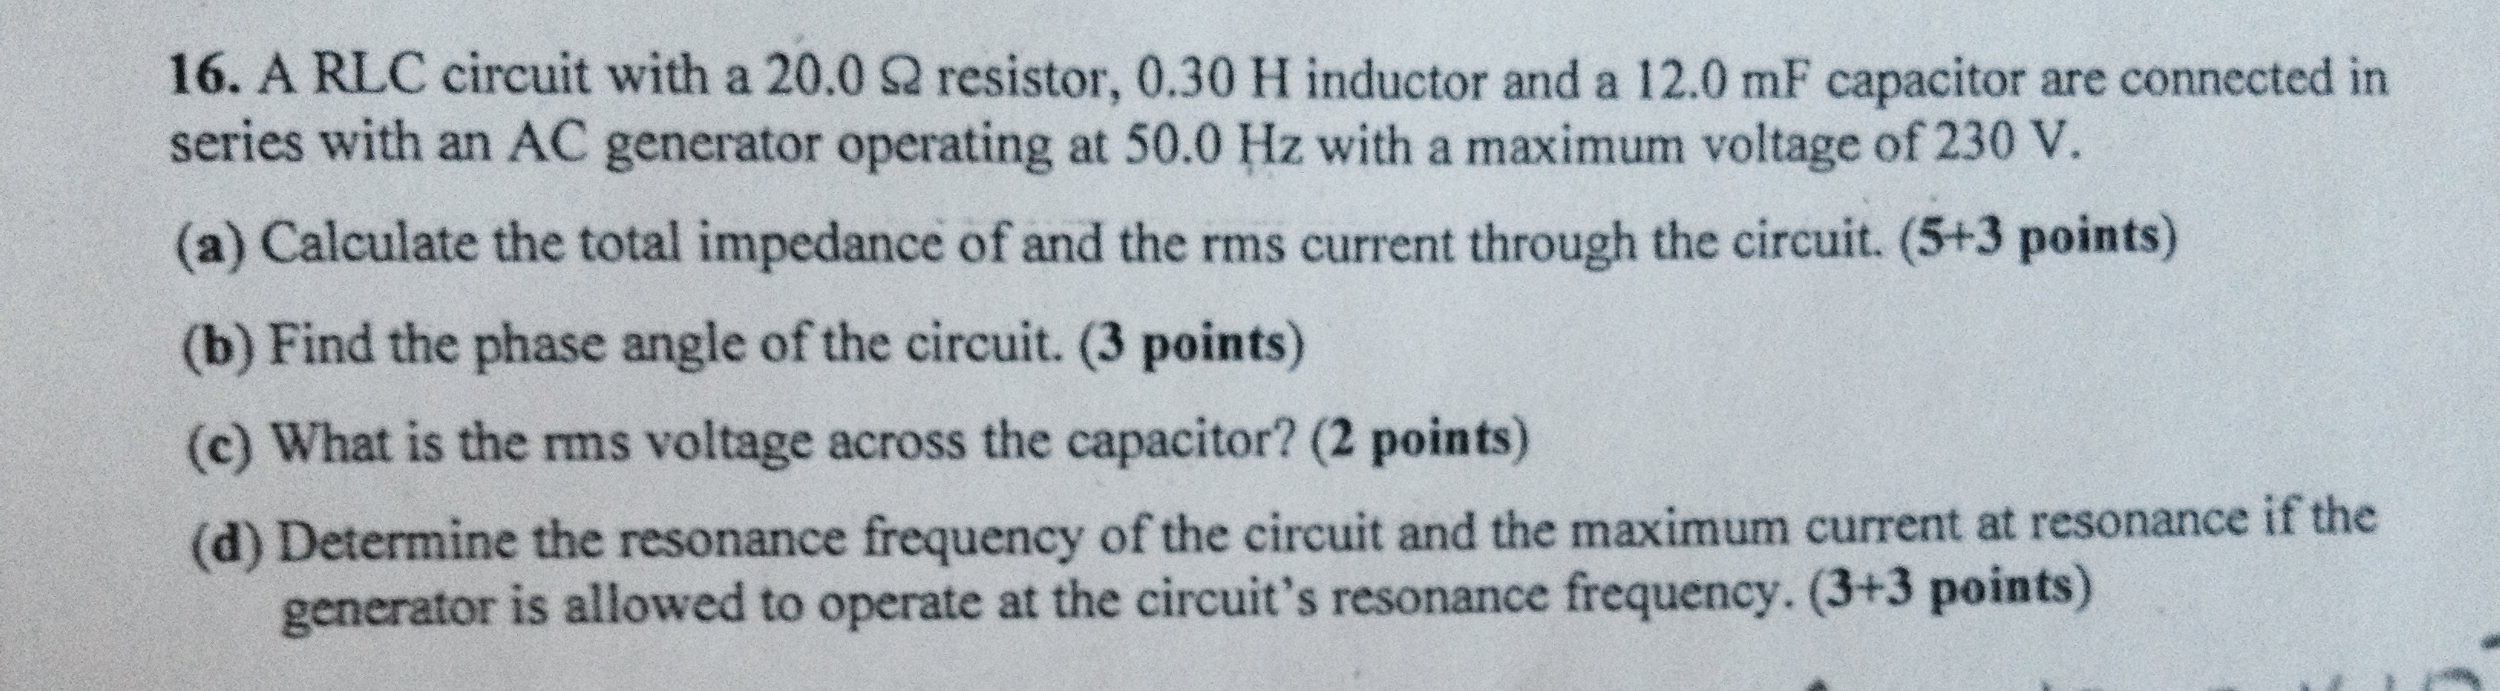 Solved: A RLC Circuit With A 20.0 Ohm Resistor, 0.30 H Ind ...